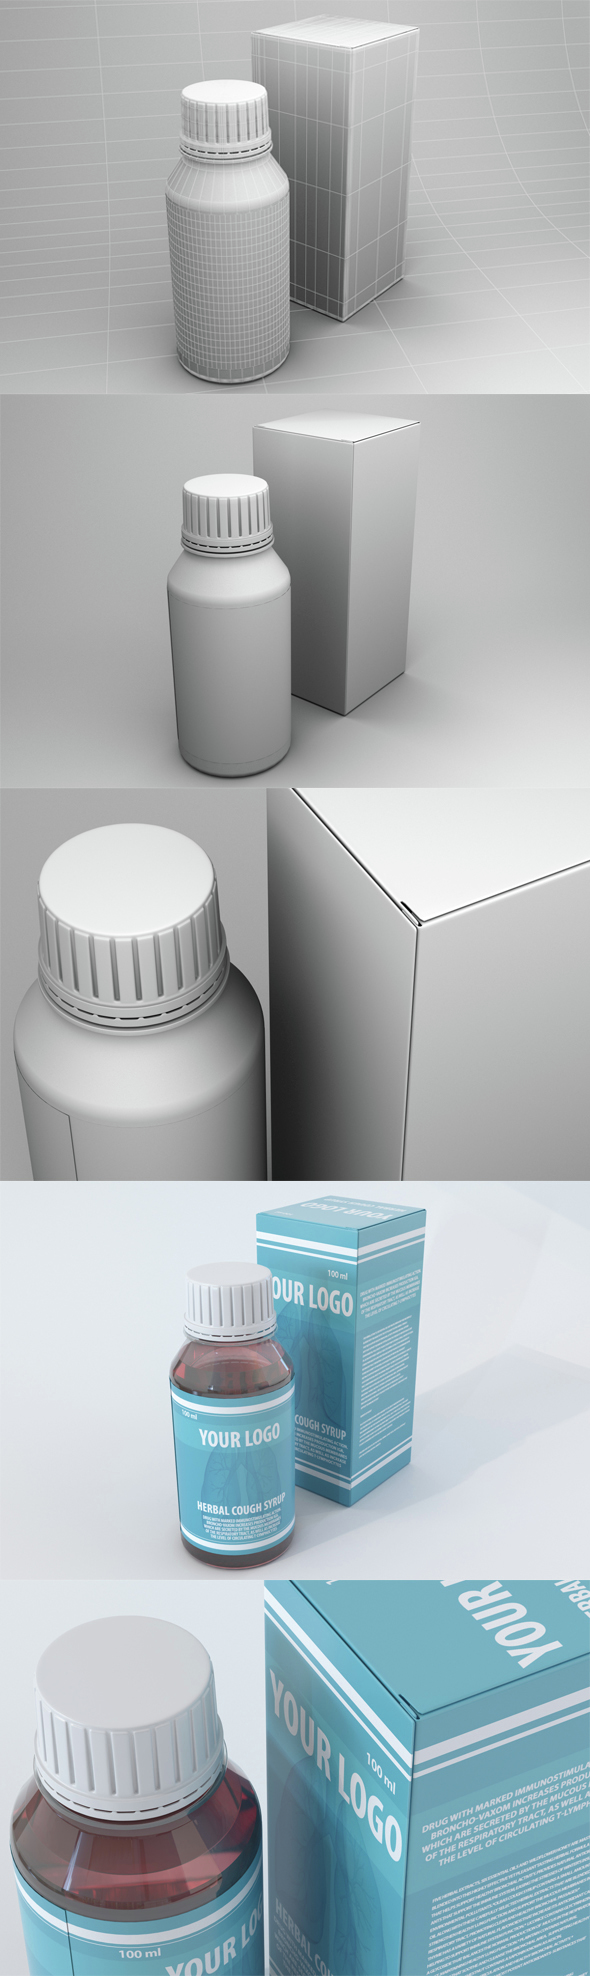 high poly Medical bottles and box - 3DOcean Item for Sale